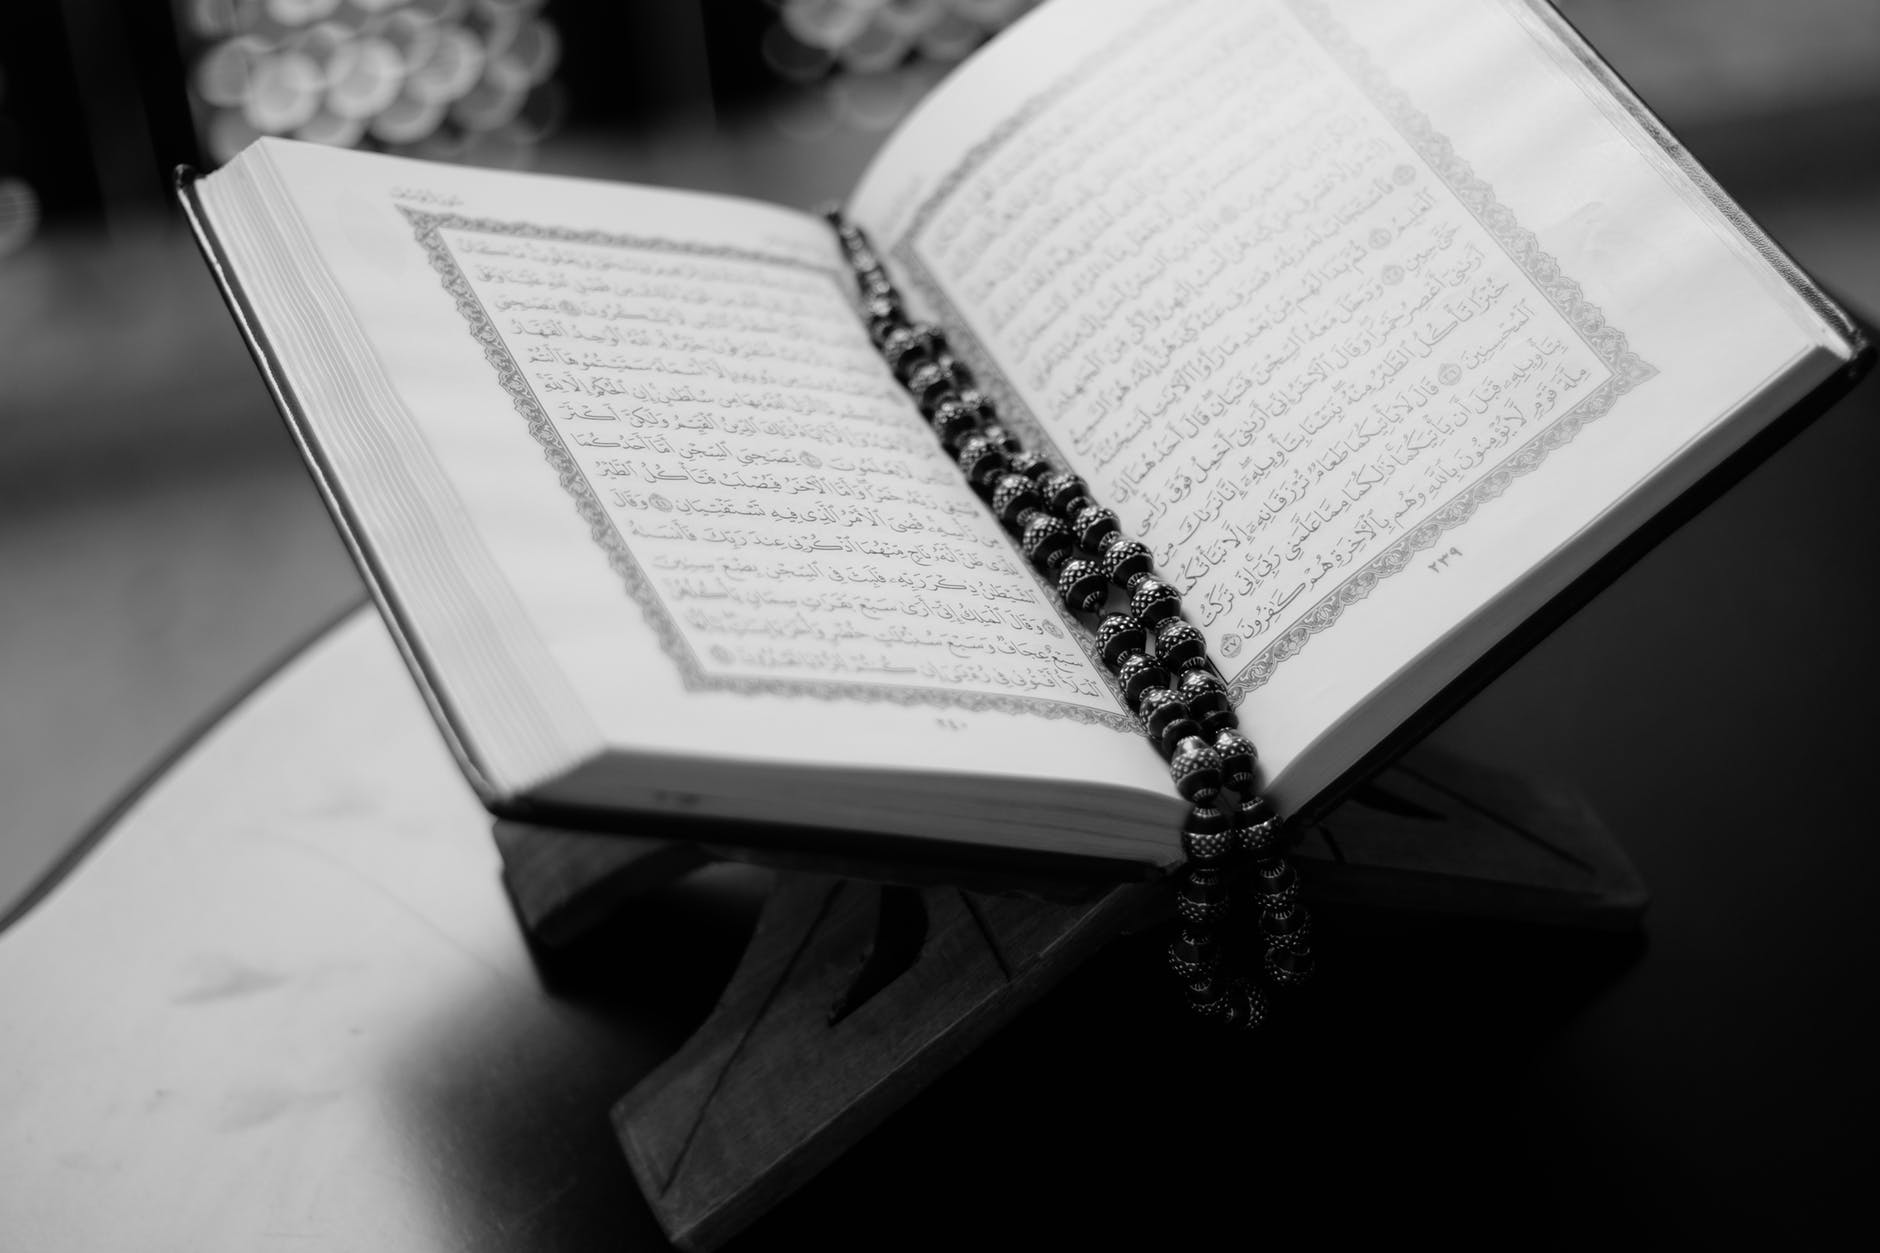 11 Myths about Islam and Muslims - 52Stirs.com